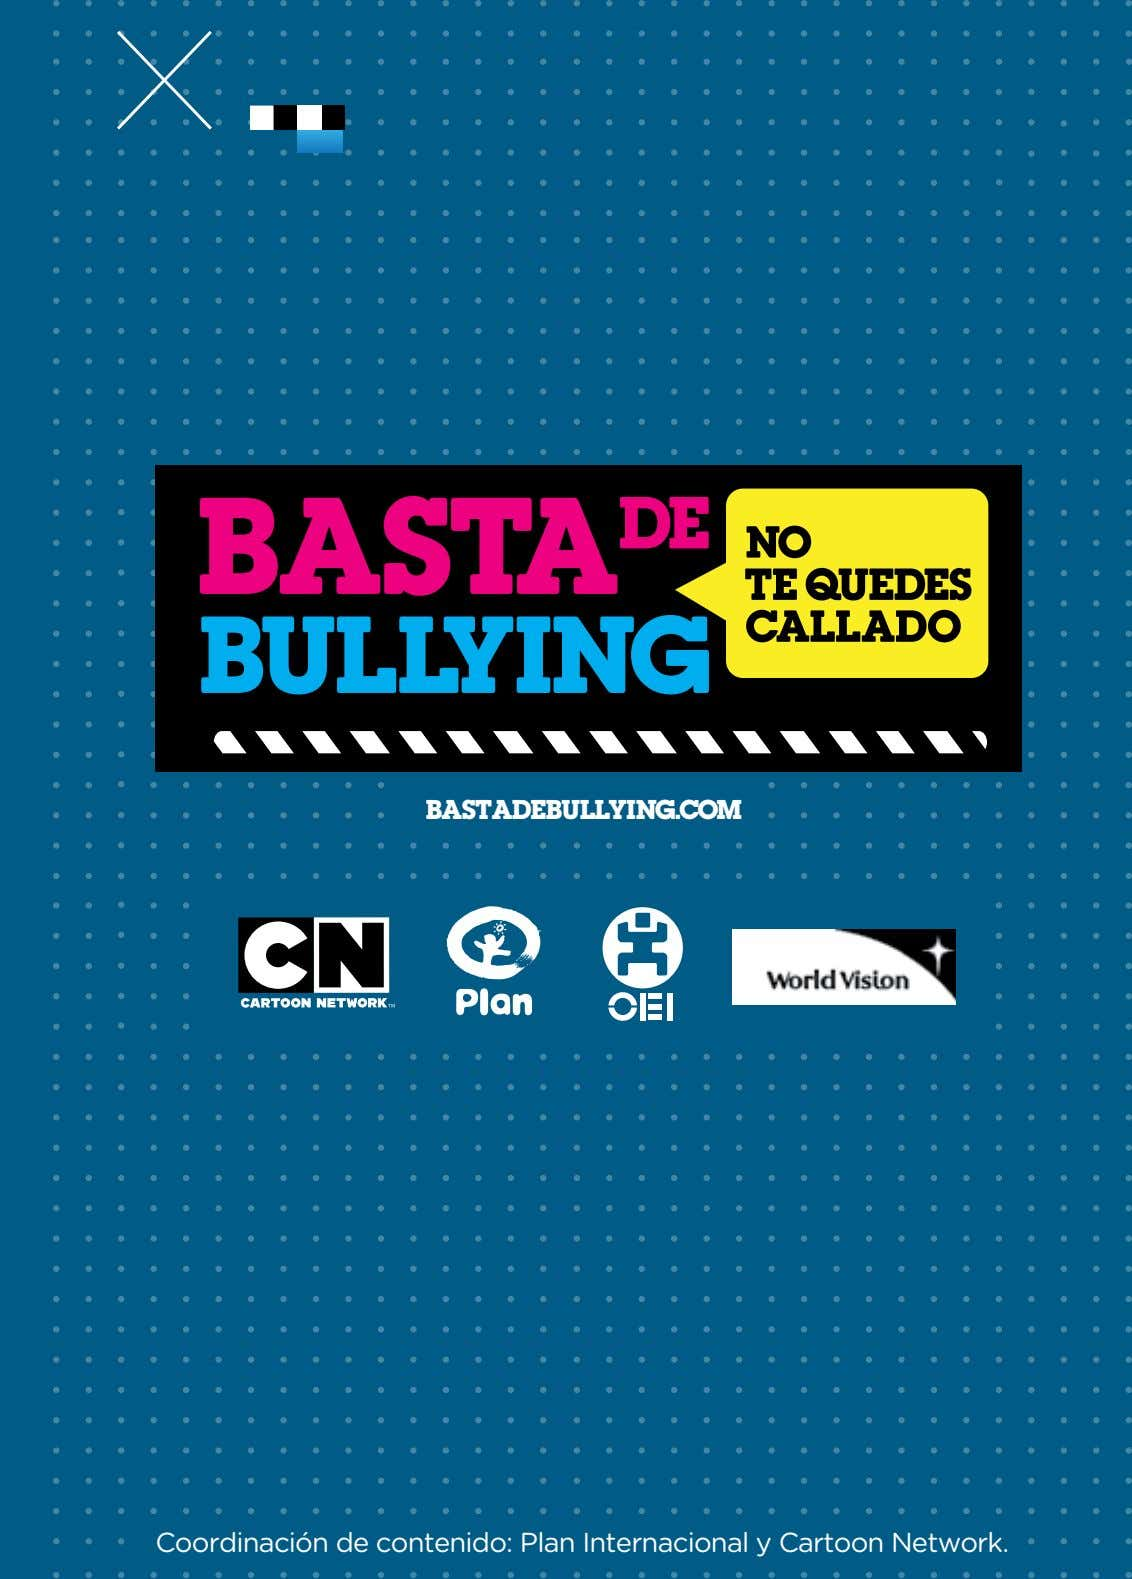 bastadebullying.com Coordinación de contenido: Plan Internacional y Cartoon Network. 40